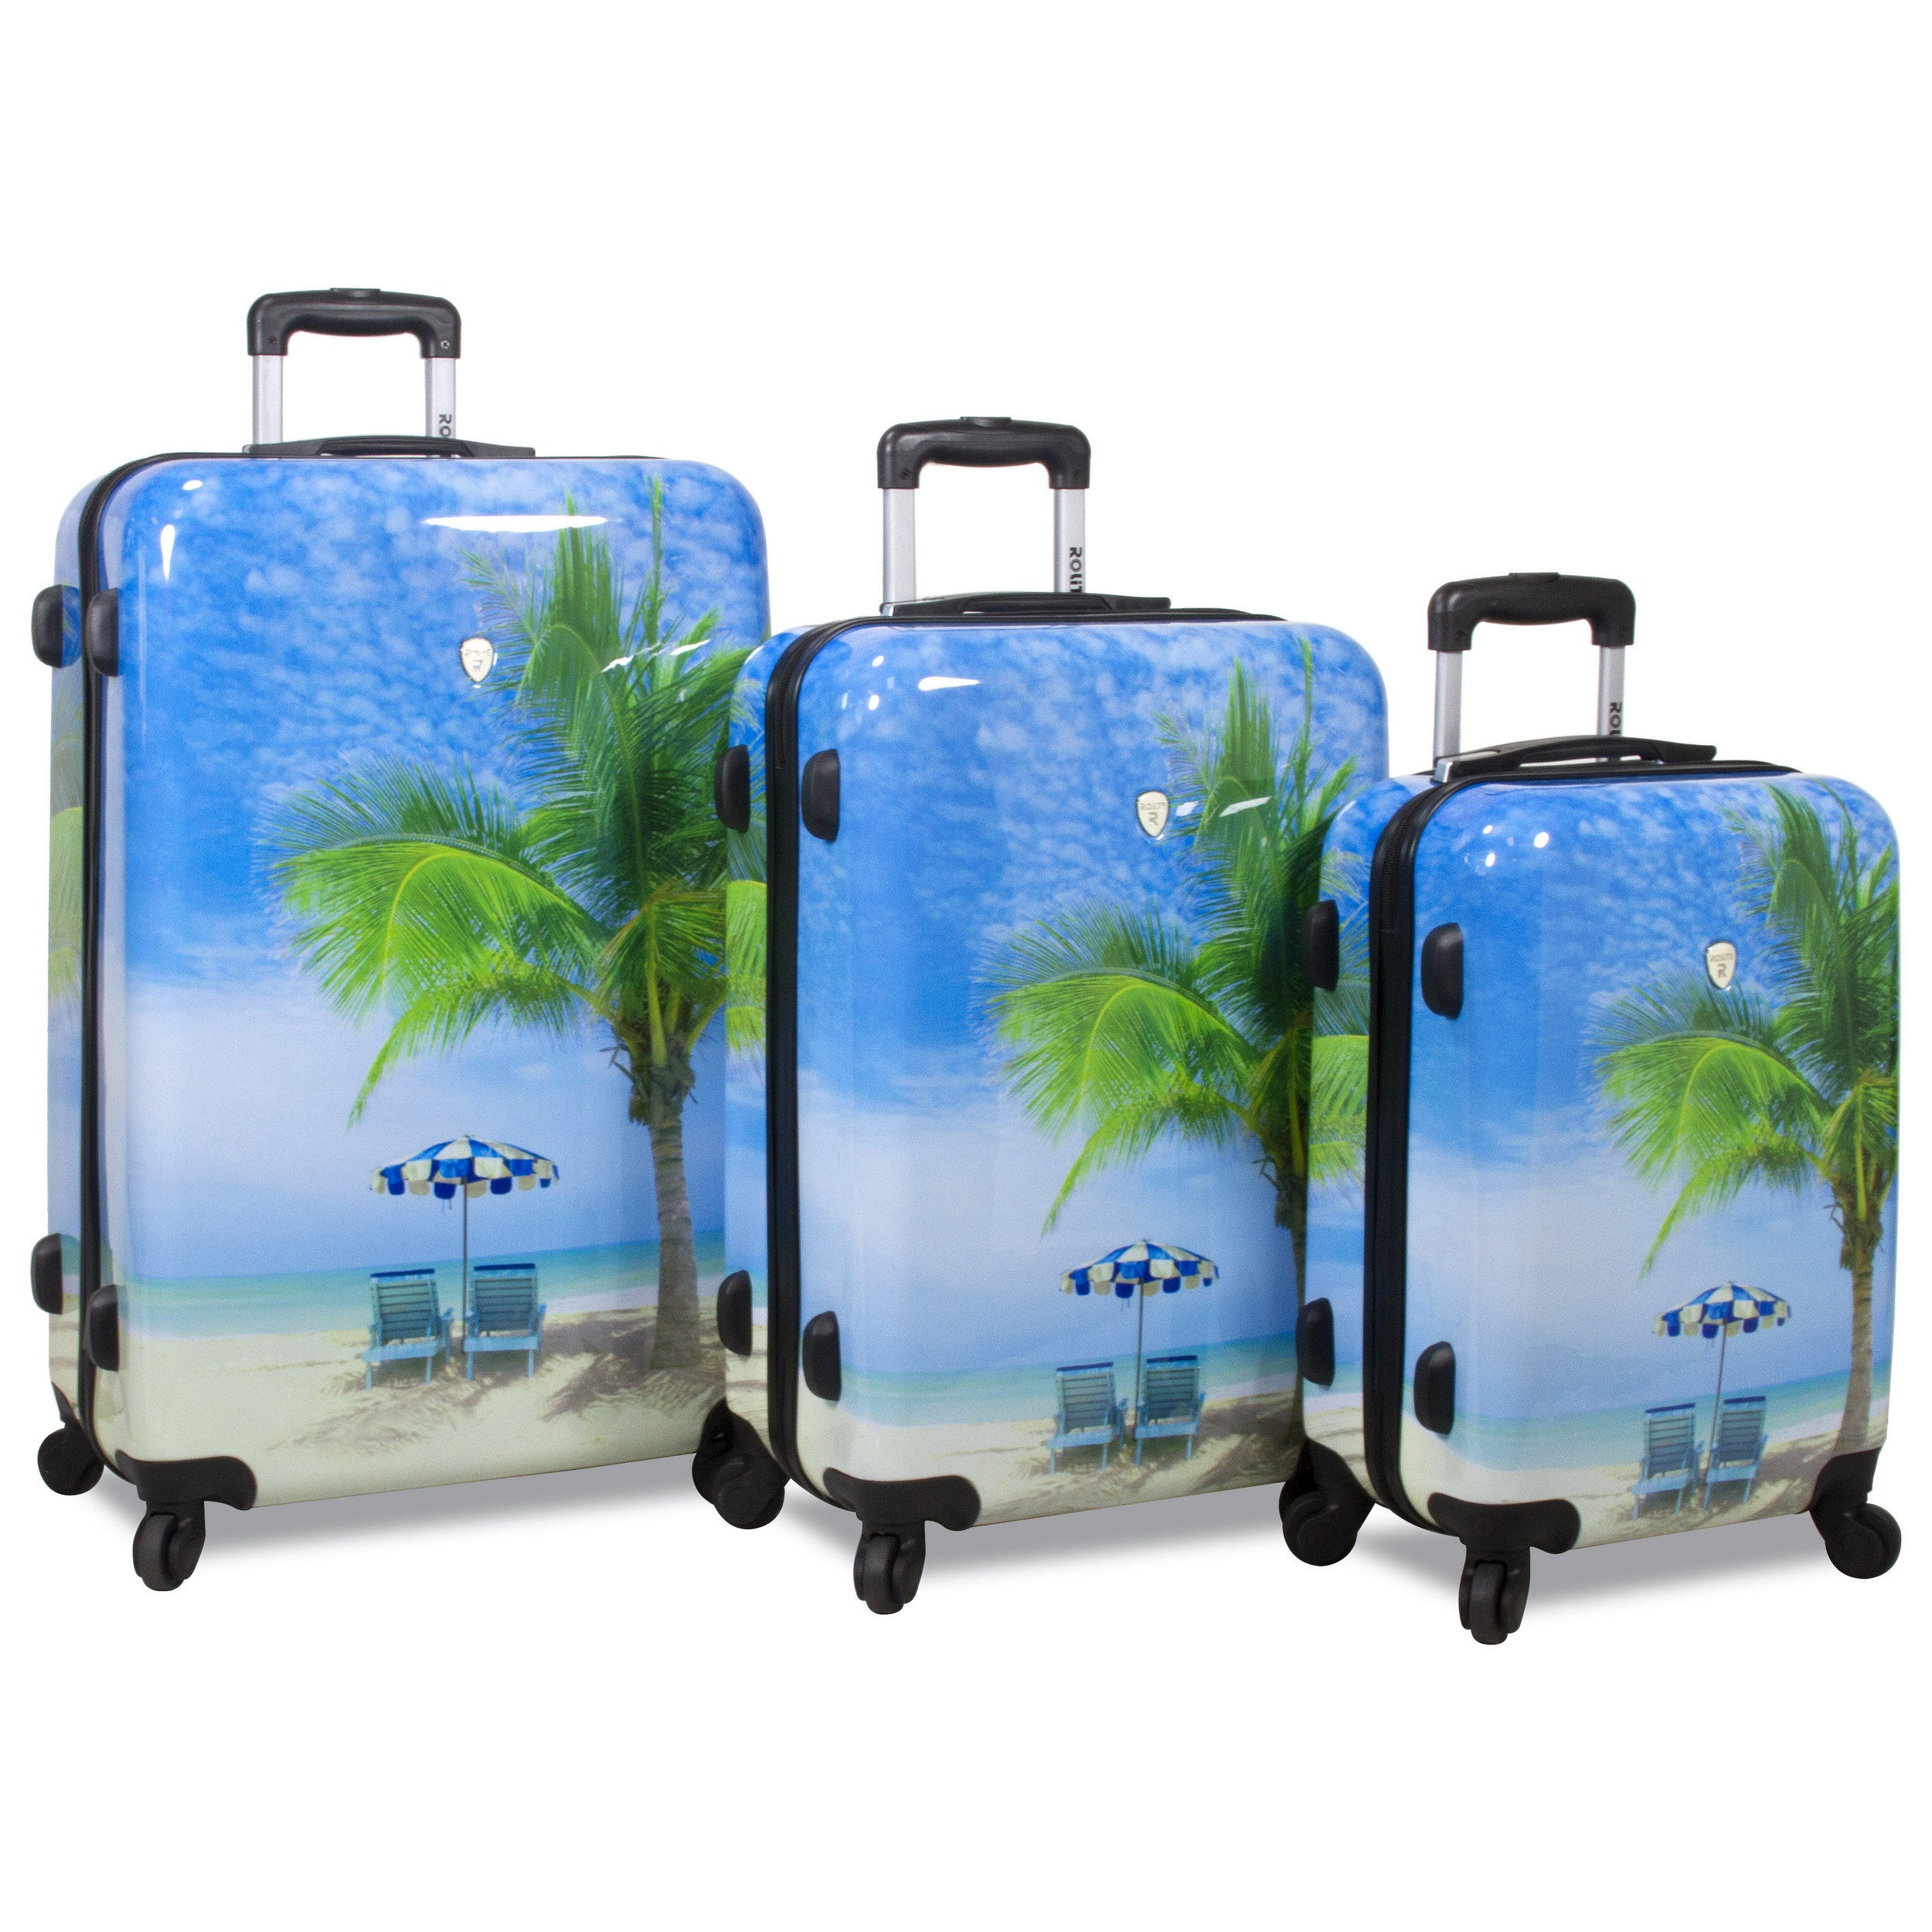 e676e0fb9 Multi-color Luggage Sets | Find Great Luggage Deals Shopping at Overstock